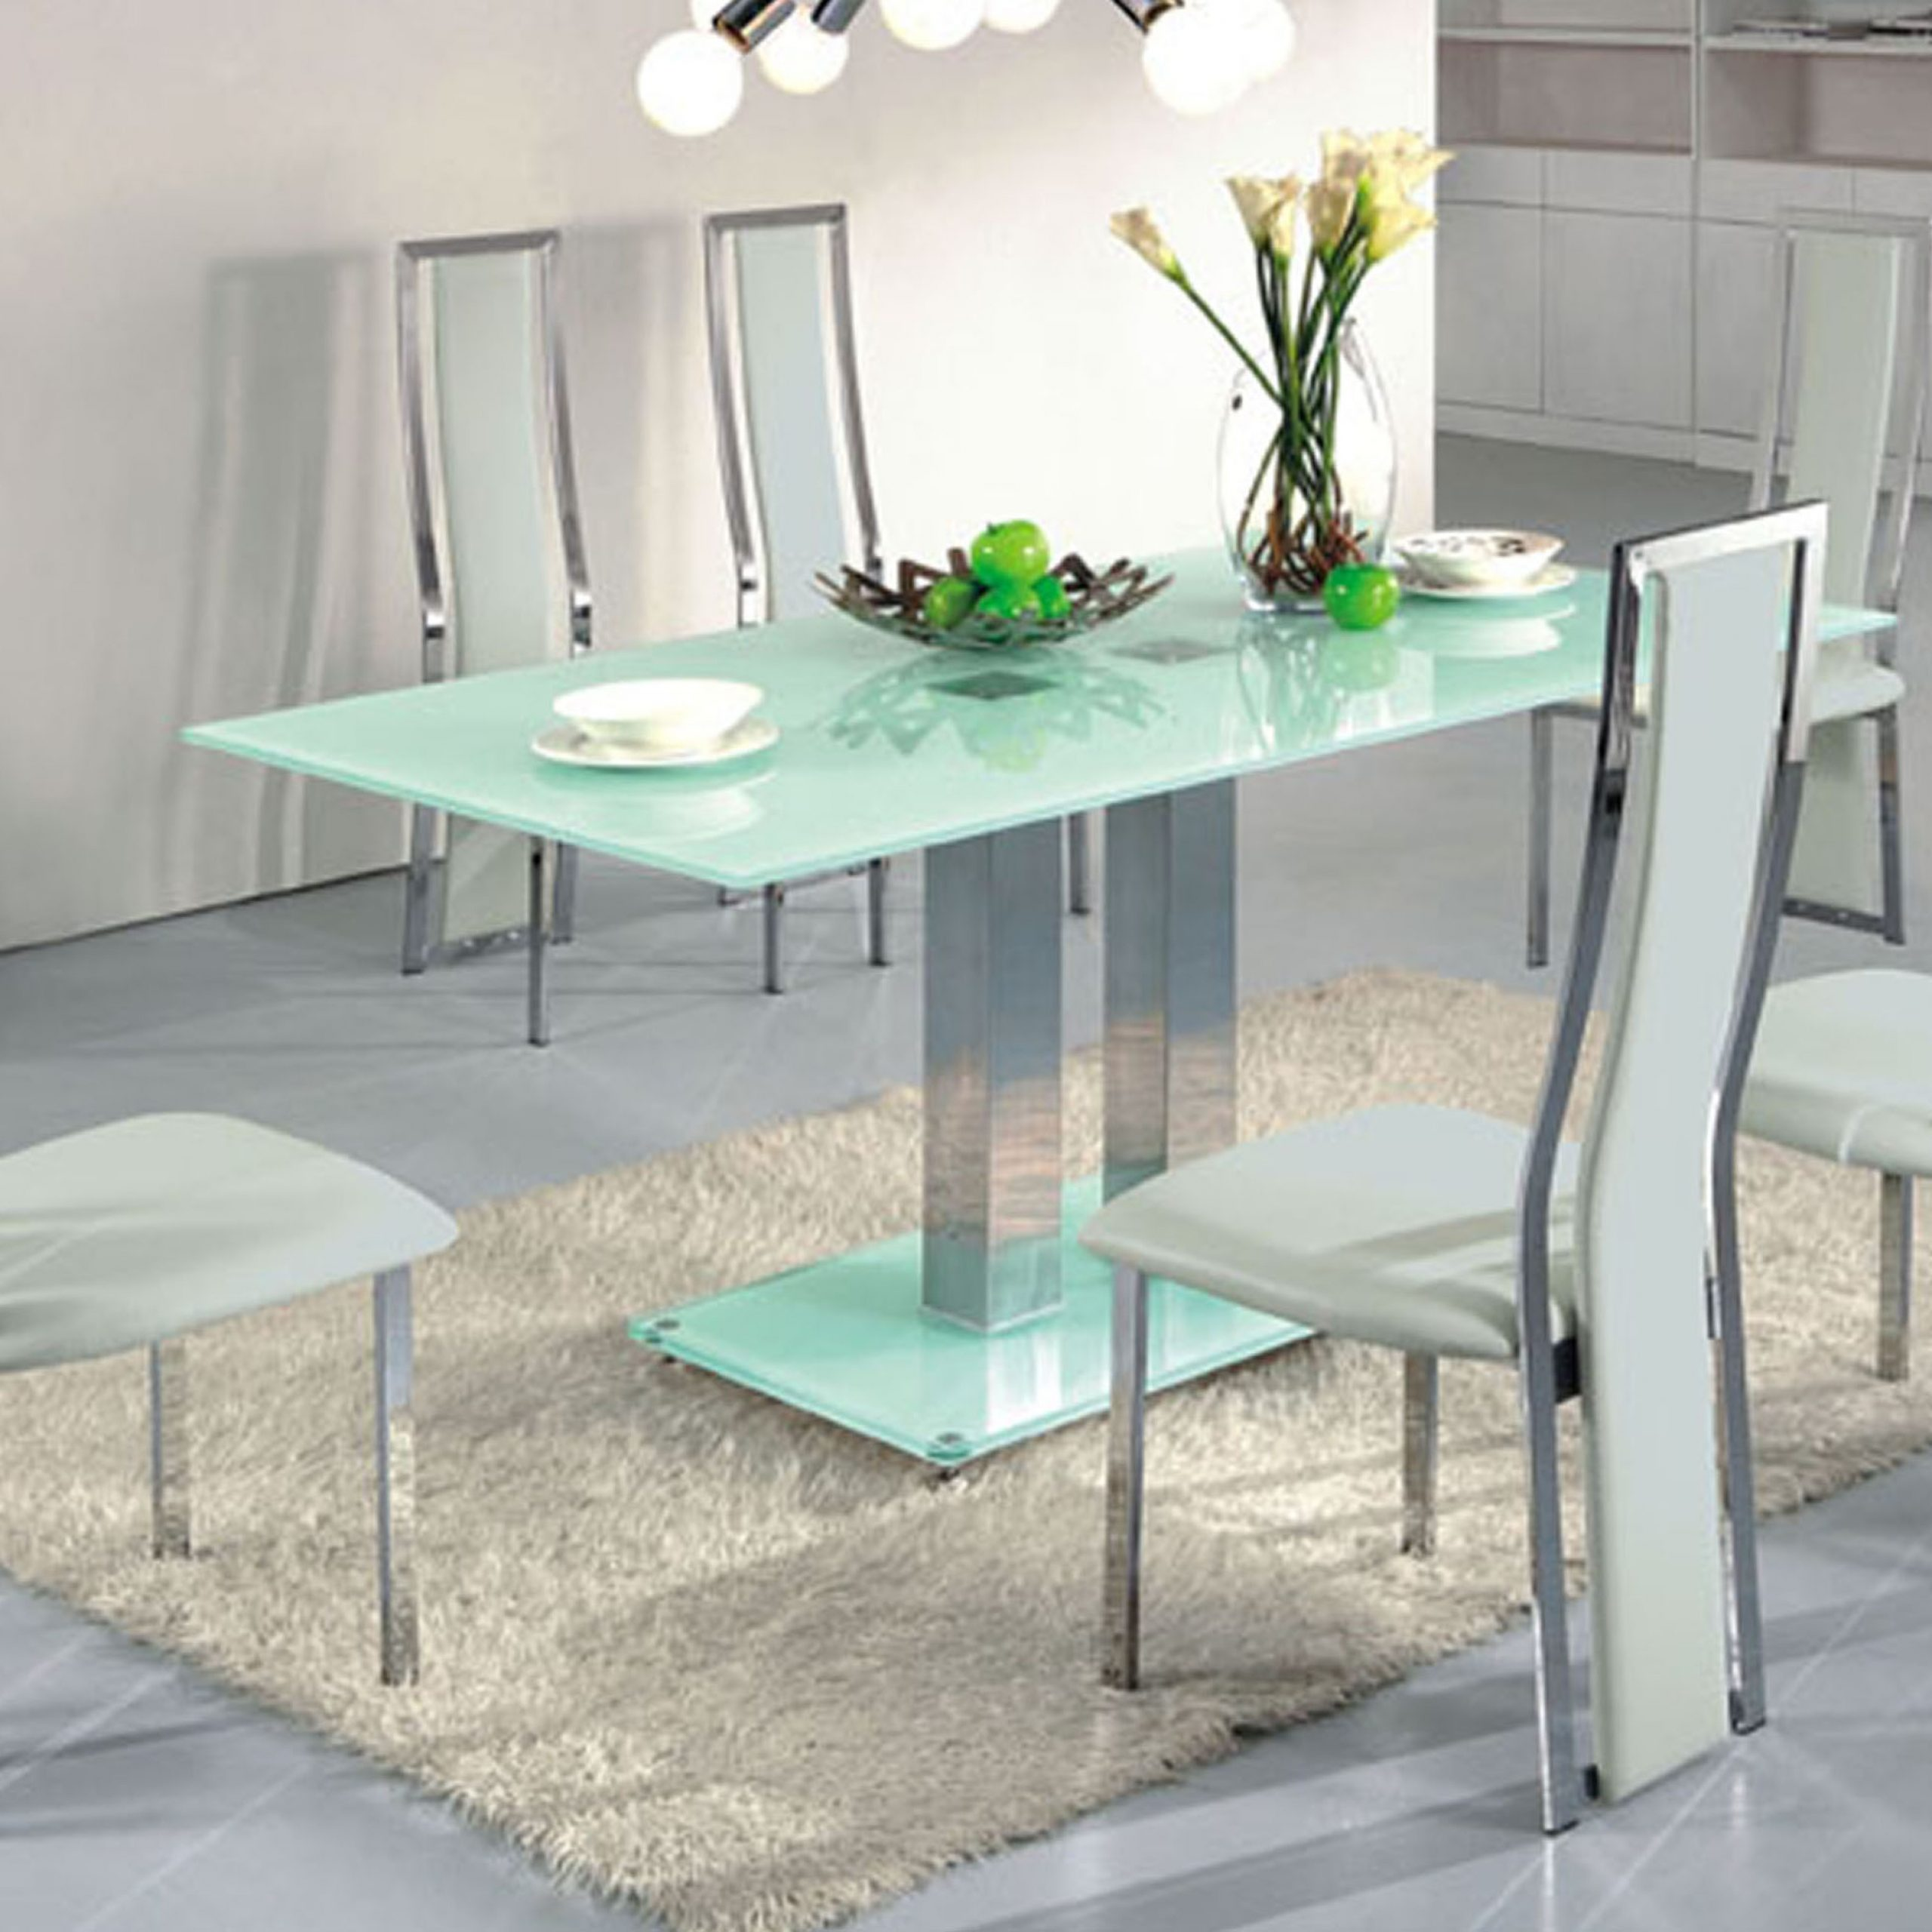 Contemporary Dining Table With Glass Top And Bas With Throughout Trendy Steel And Glass Rectangle Dining Tables (View 16 of 25)